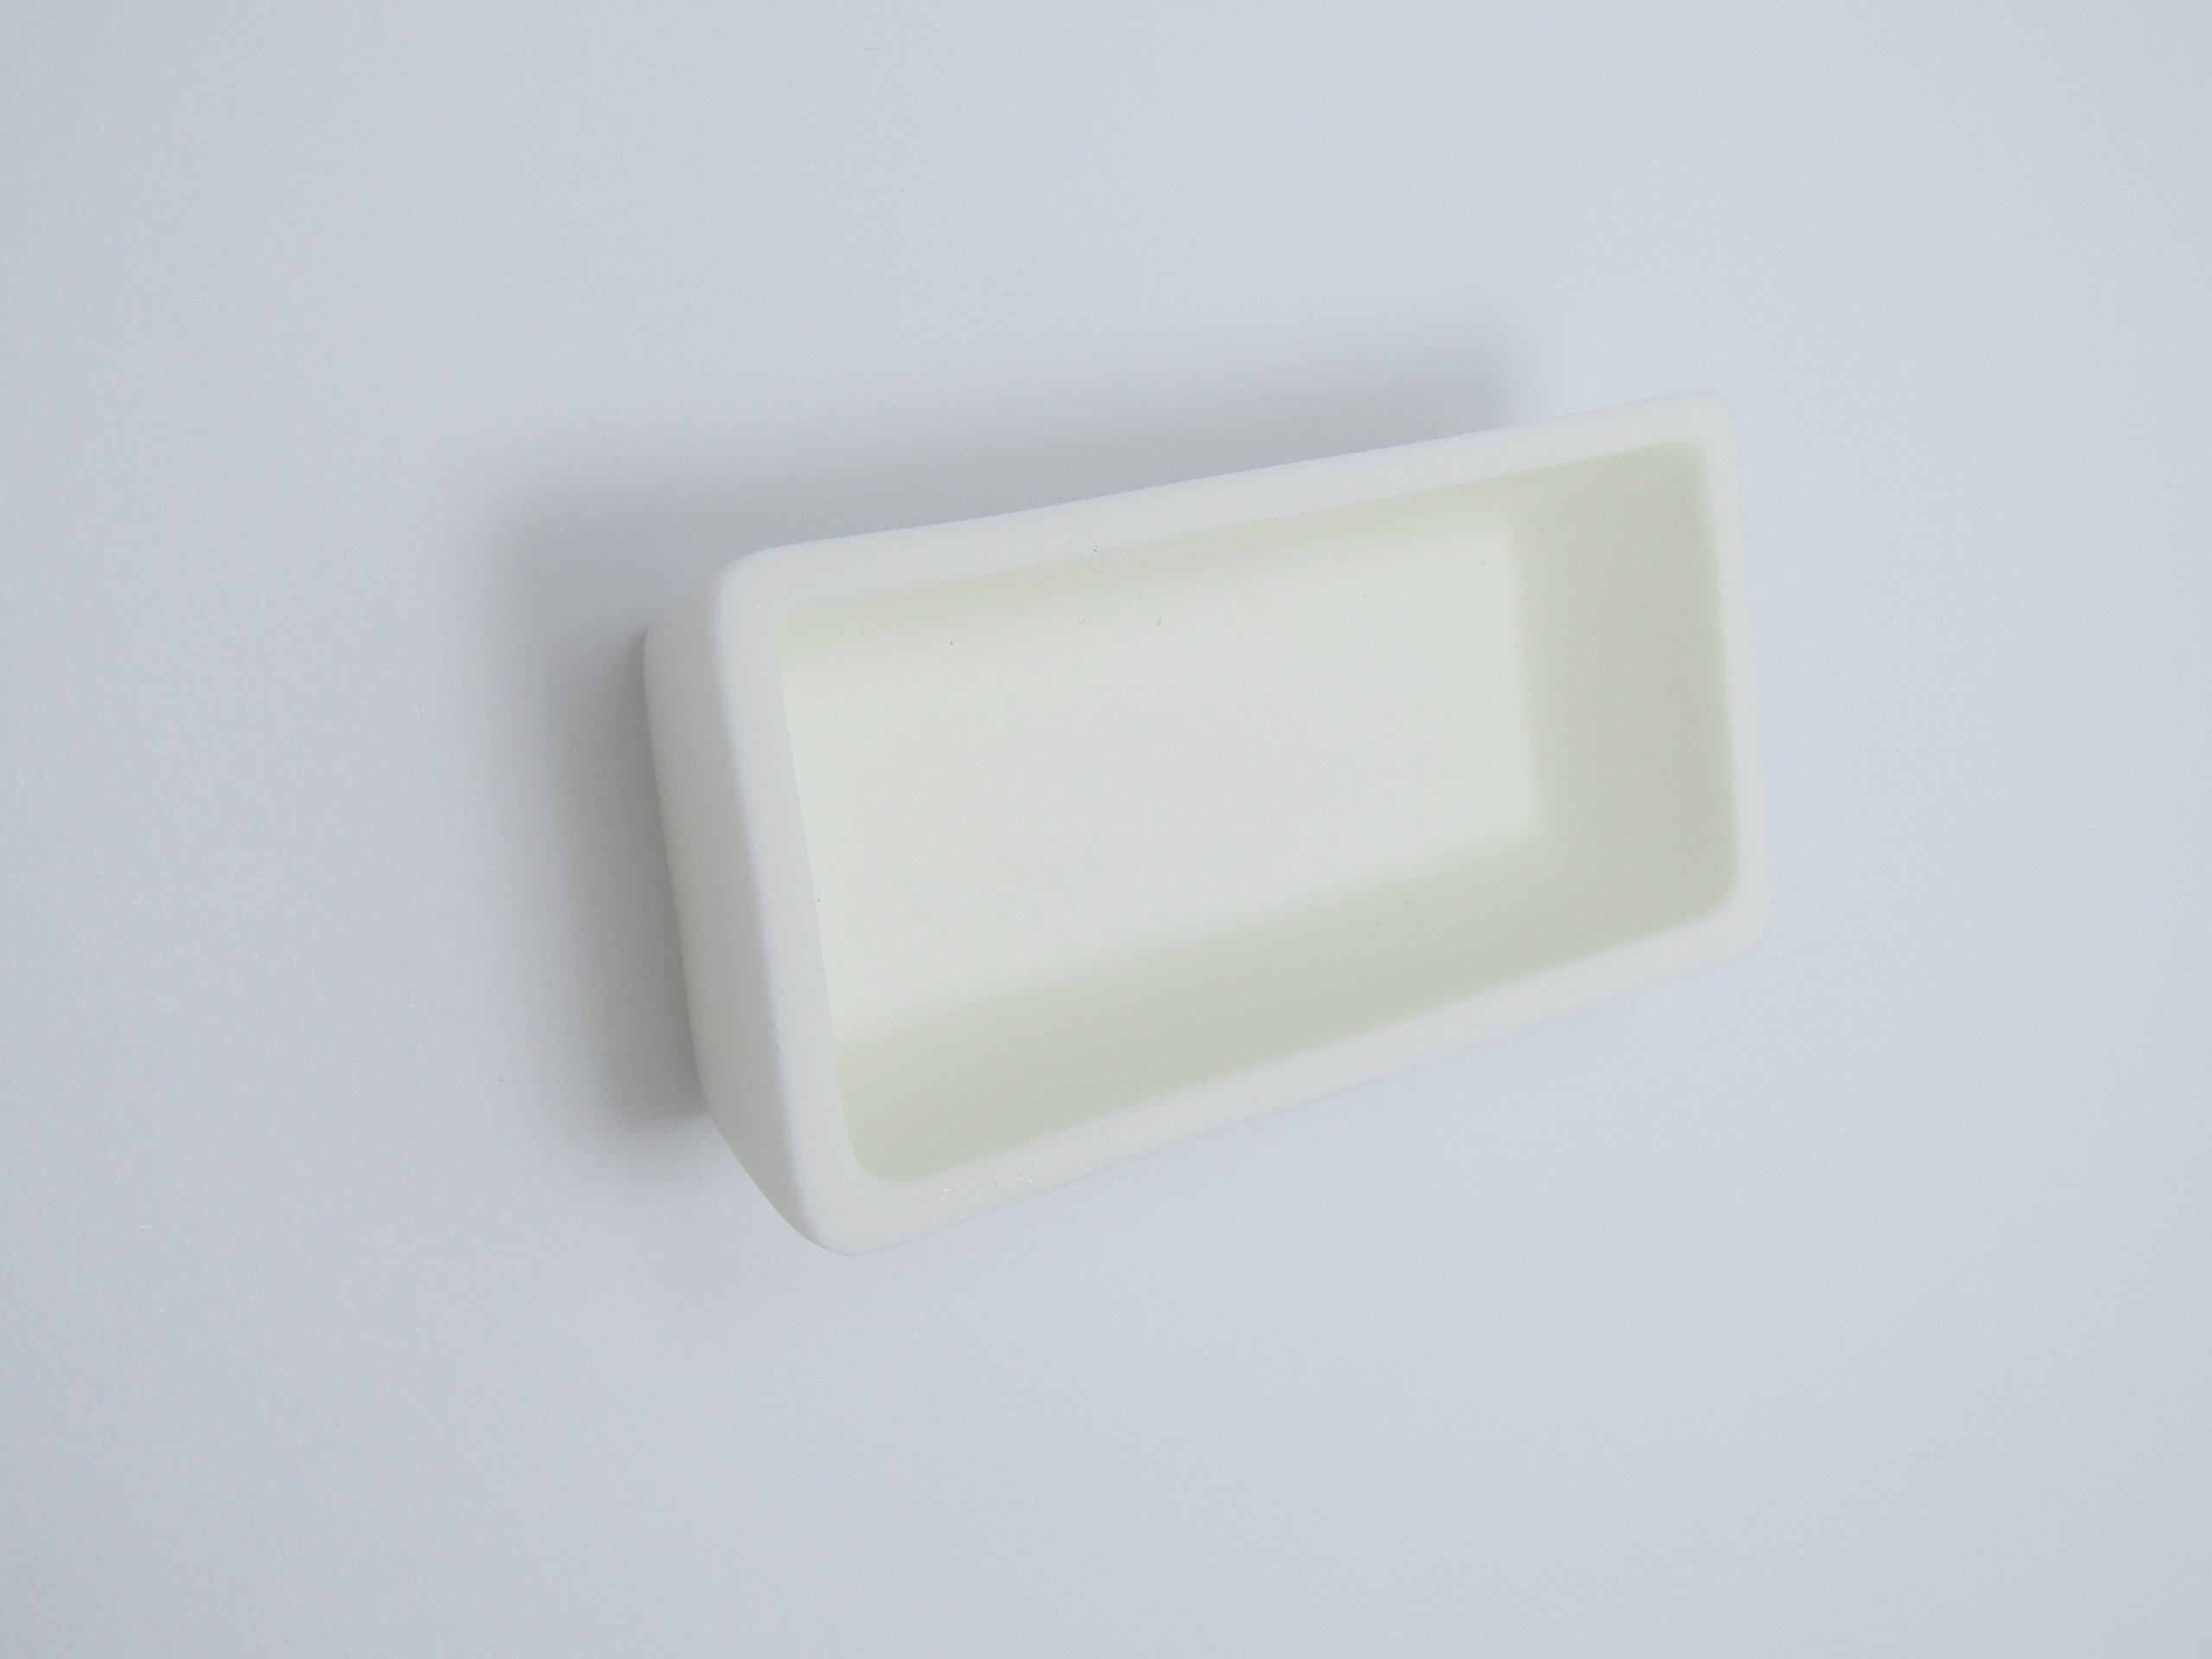 1PCS 60X30X15mm Alumina Ceramic Crucible Boat Sample Holder Furnaces 1600 oC